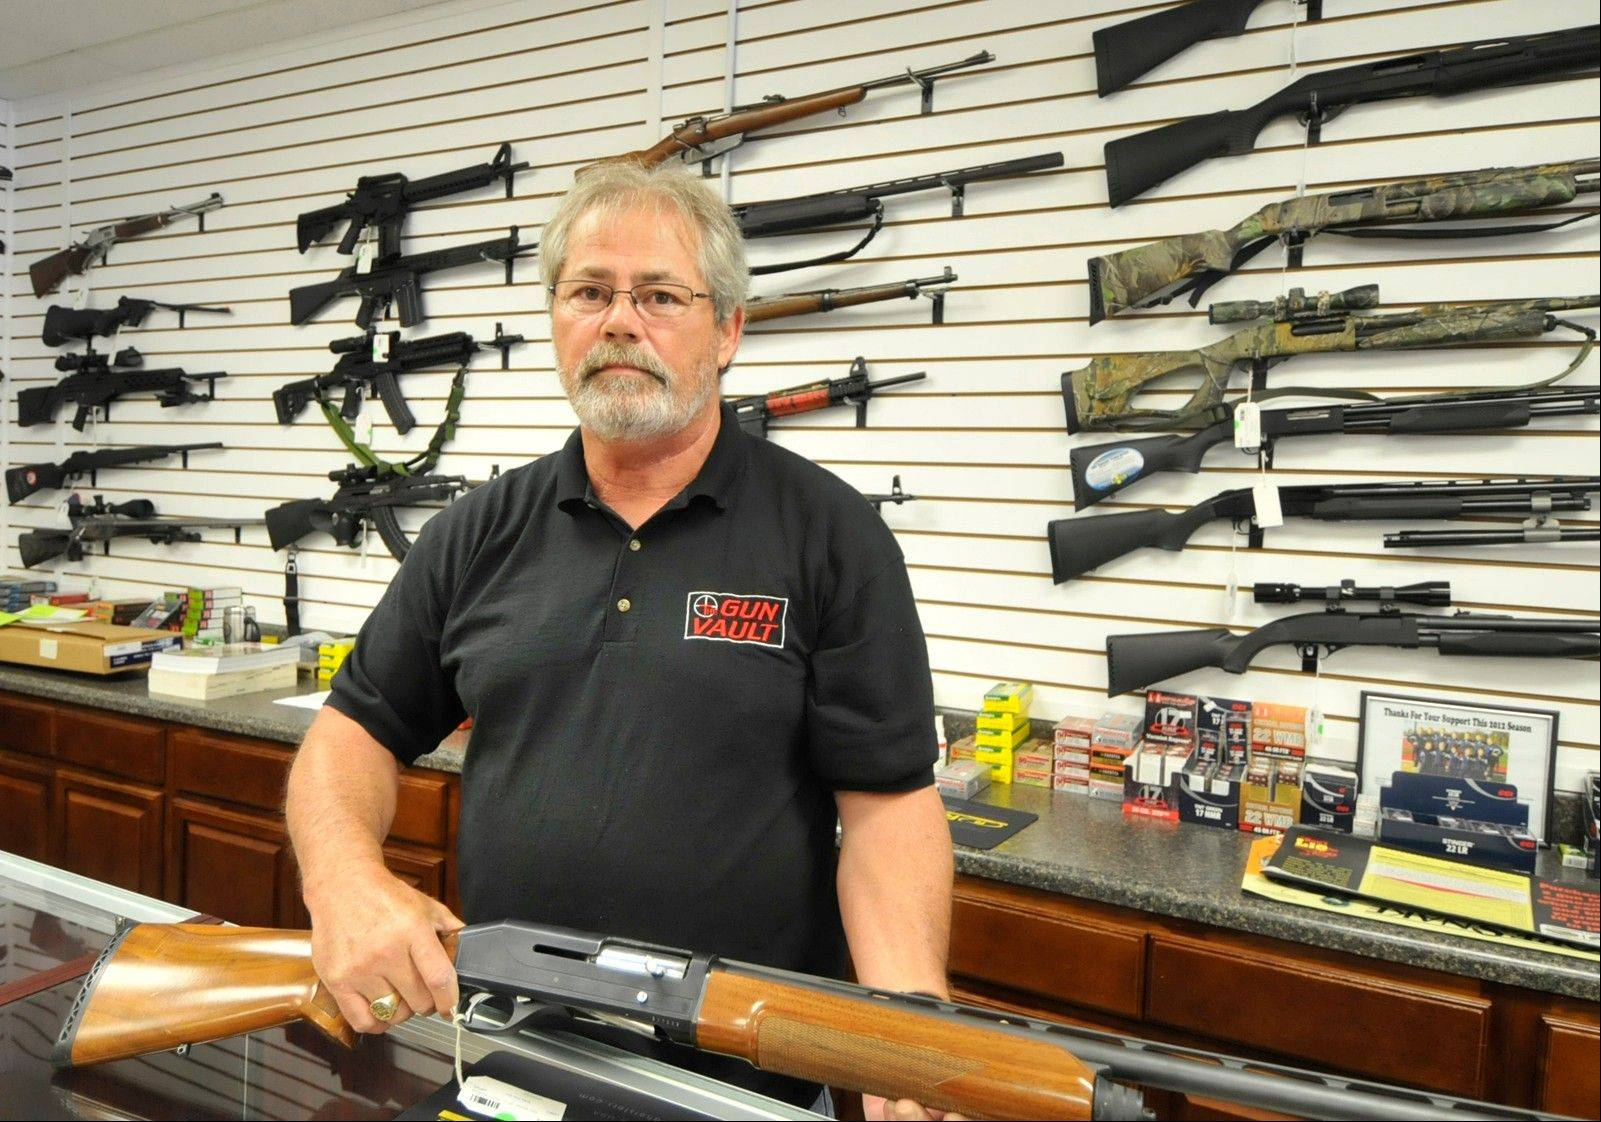 Randy Hodges holds a firearm at the Gun Vault in High Point, N.C., Monday. Issues of gun sales, especially assault rifles and large amounts of ammunition, surfaced after the Aurora, Colo., theater shootings a week ago. But little is expected to happen.